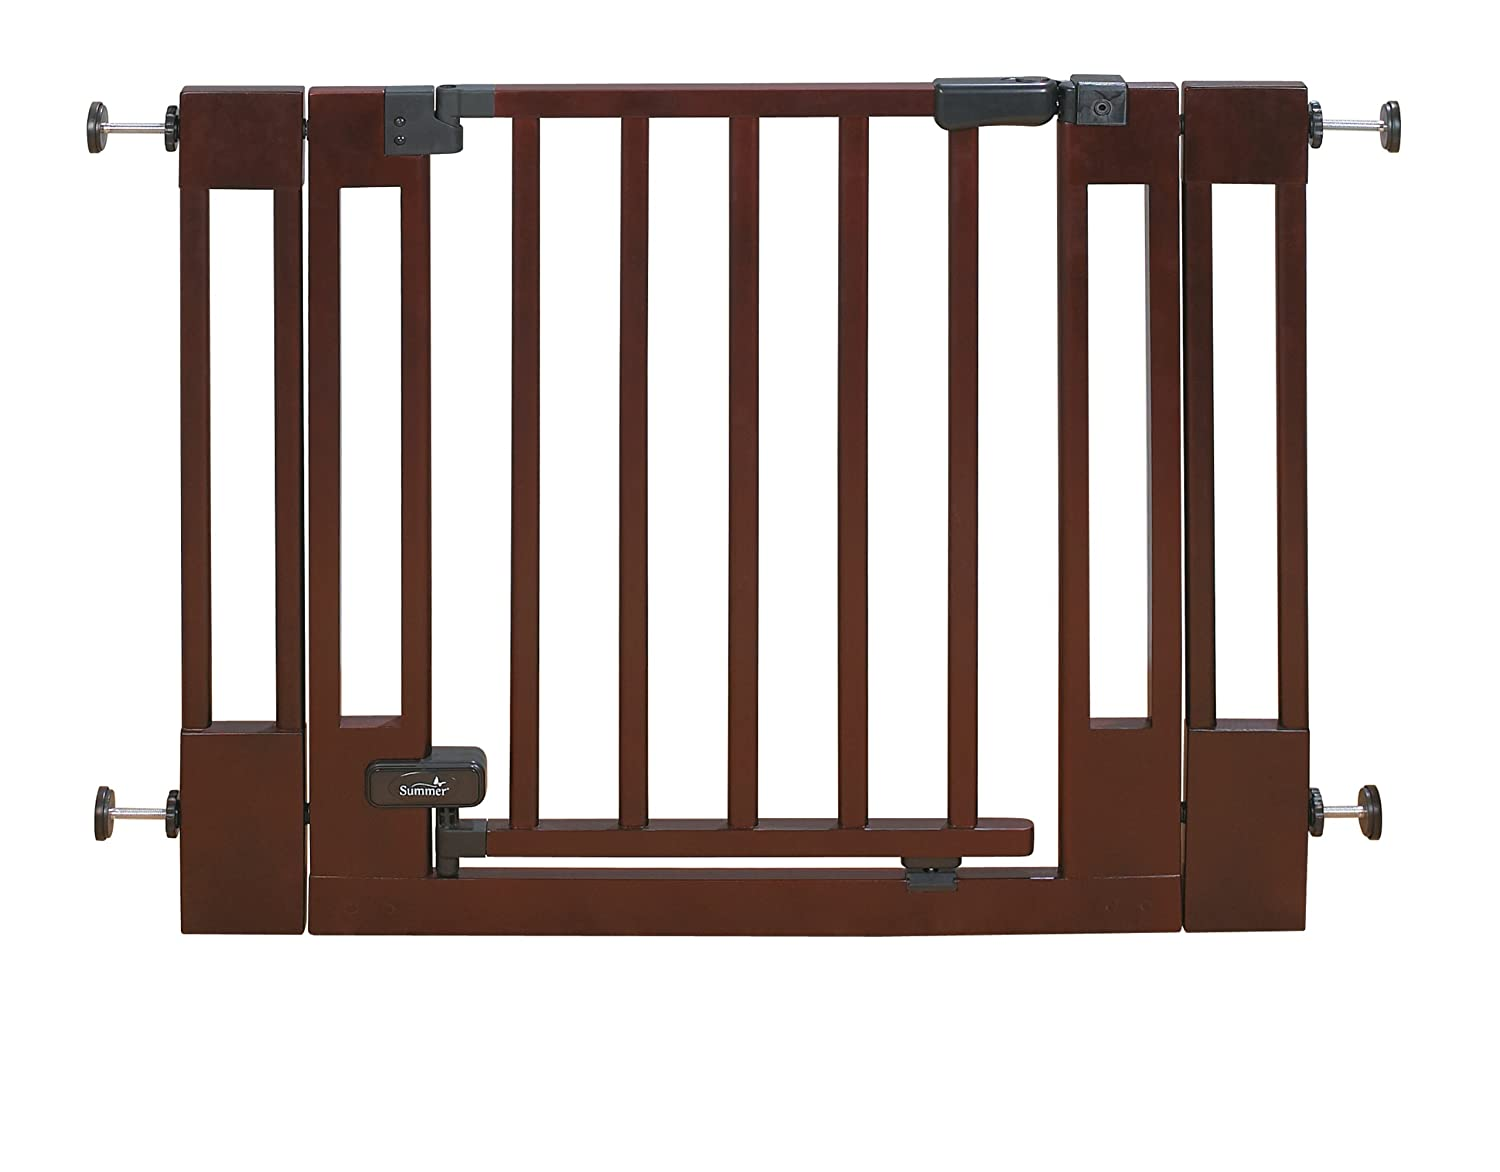 Summer Deluxe Top Of Stairs Wood Walk-thru gate